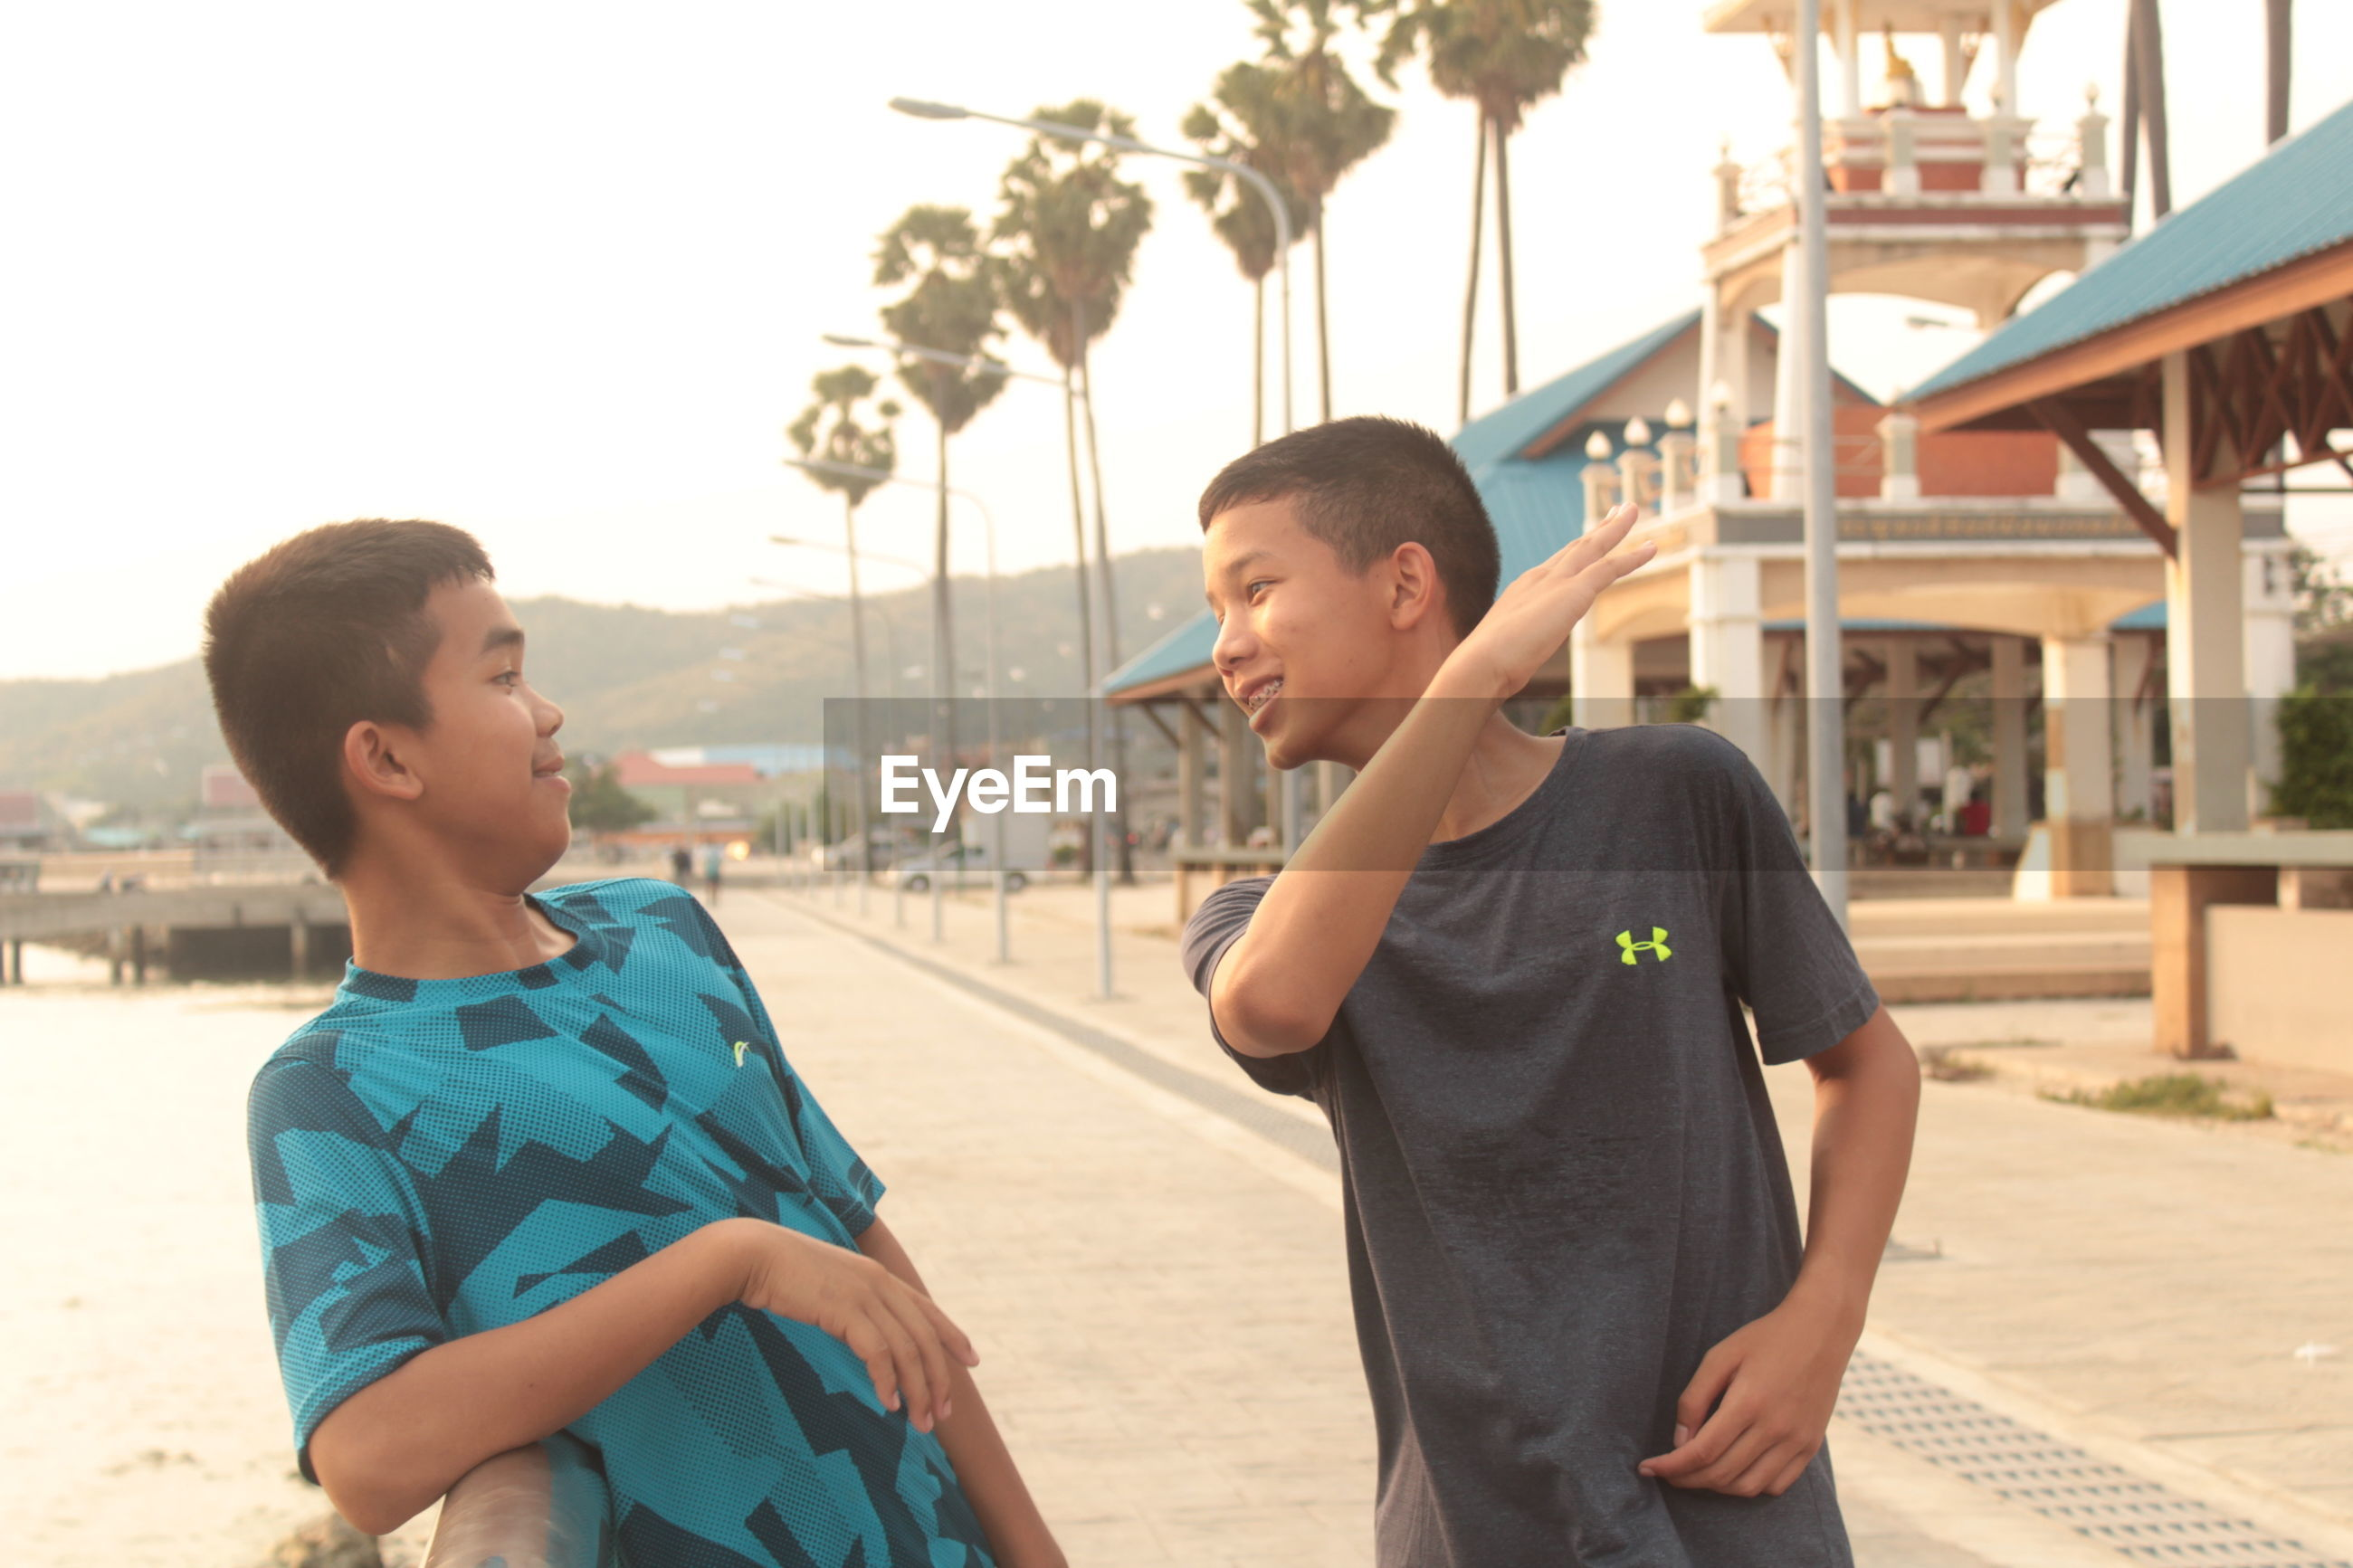 Boy gesturing to friend while standing at pier against sky